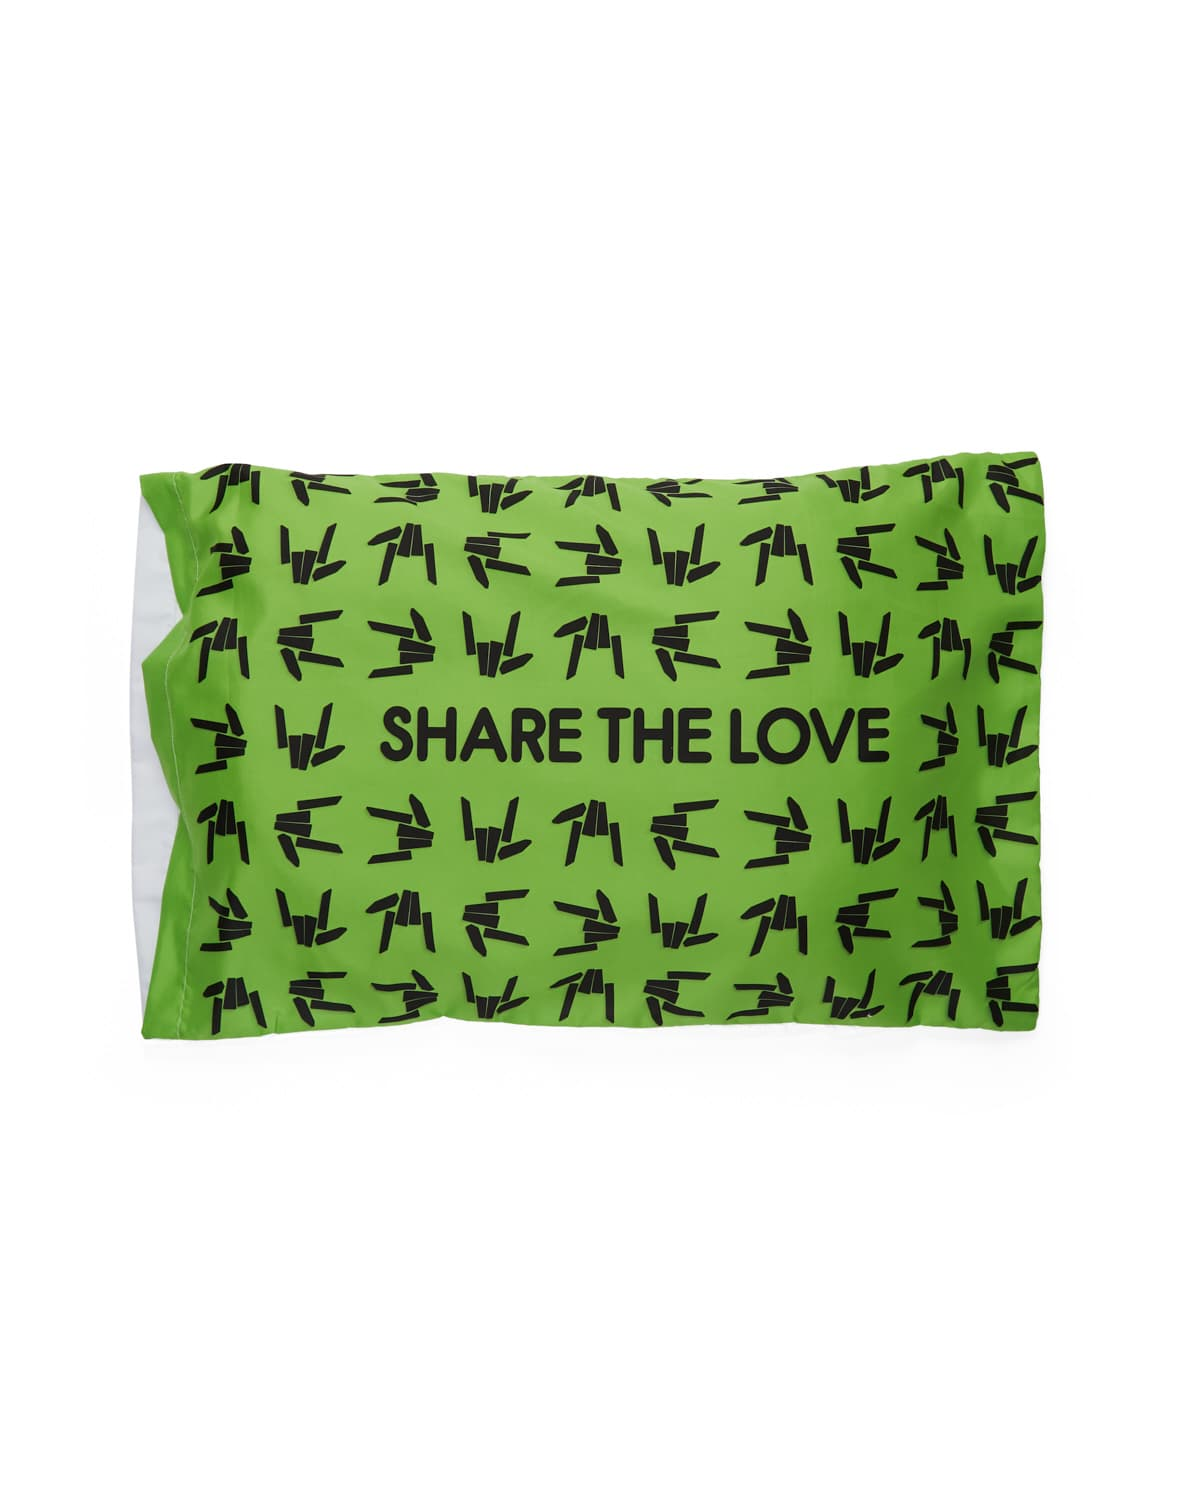 Share The Love Pillowcase